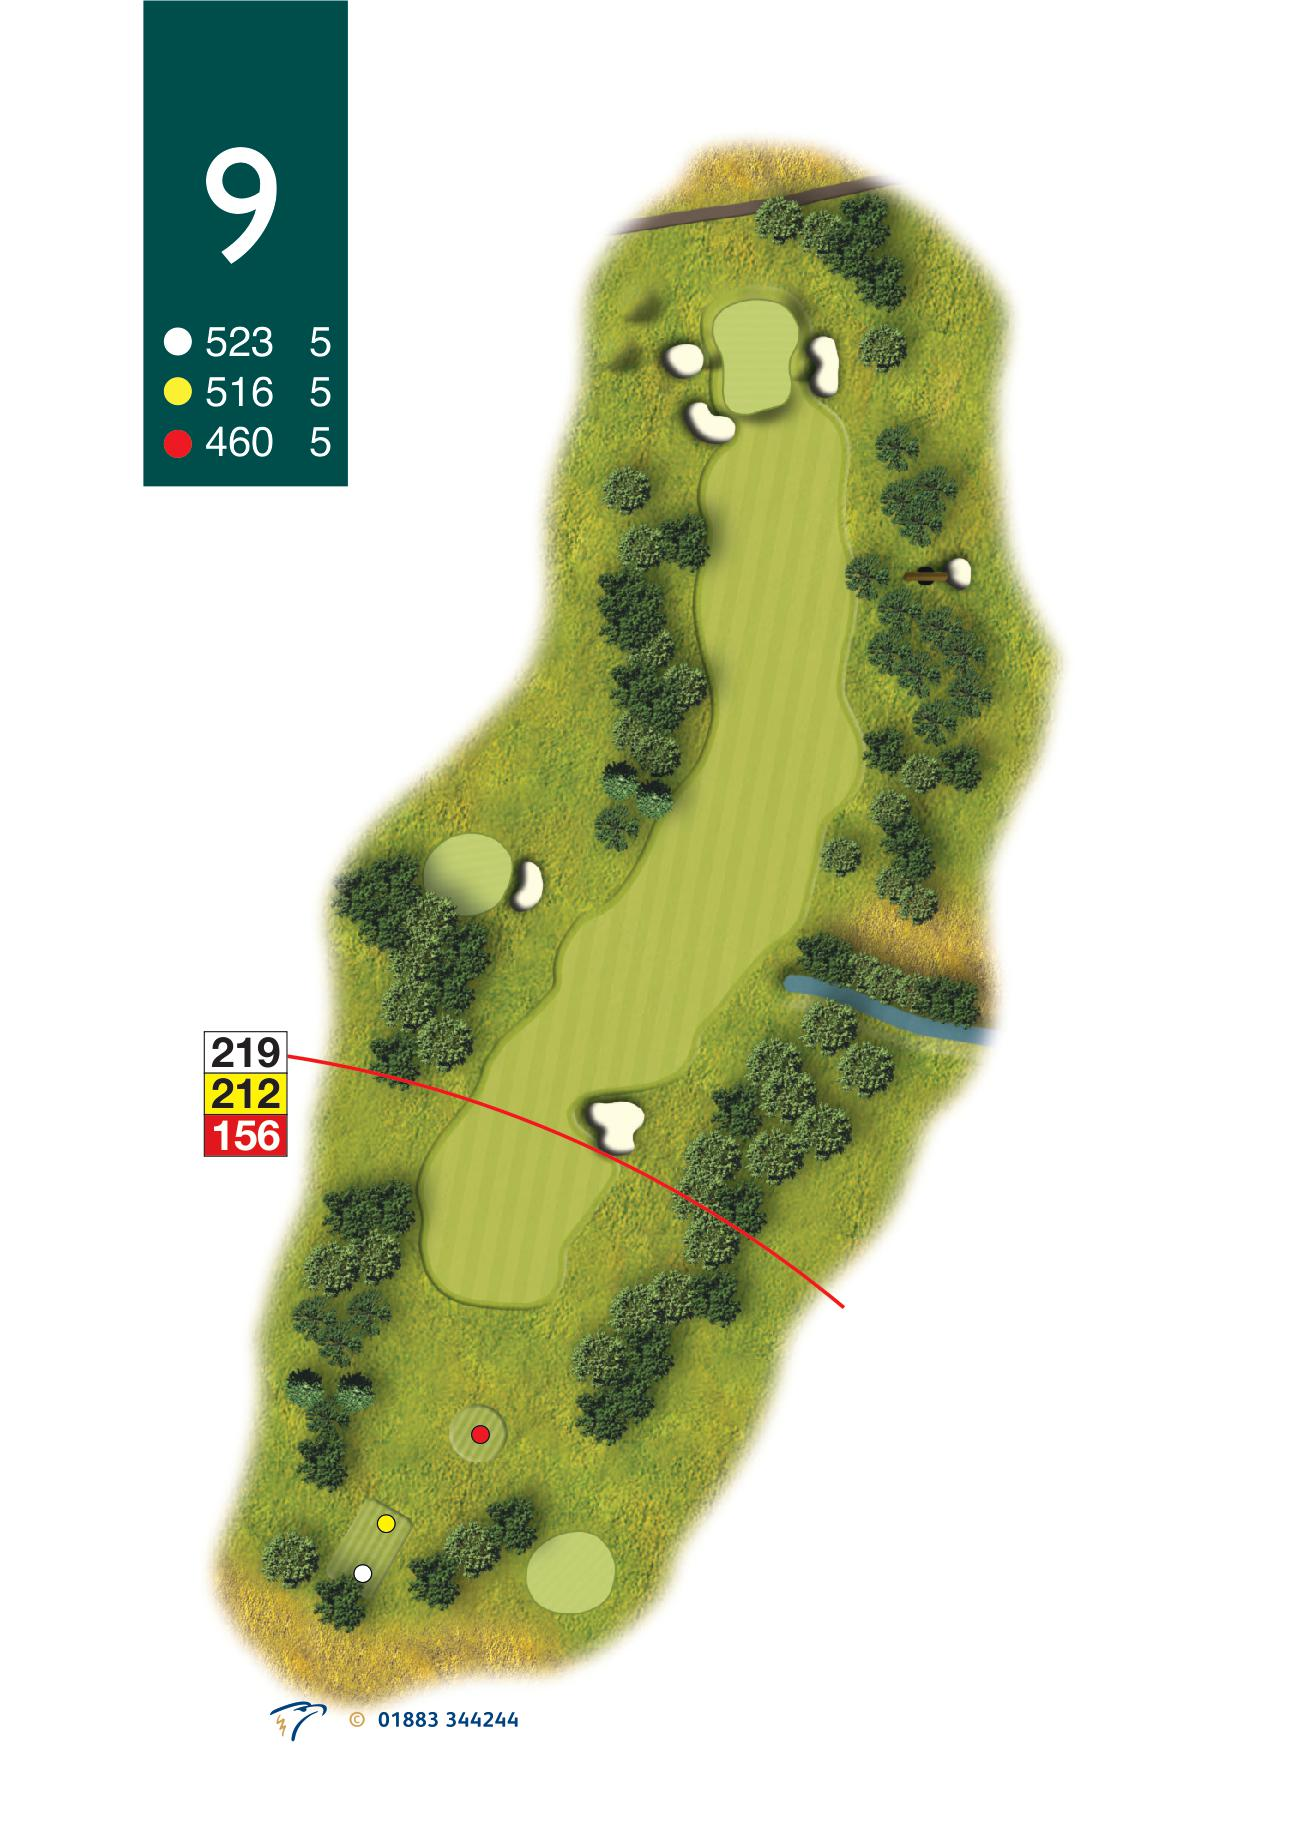 pic-valley-course-9